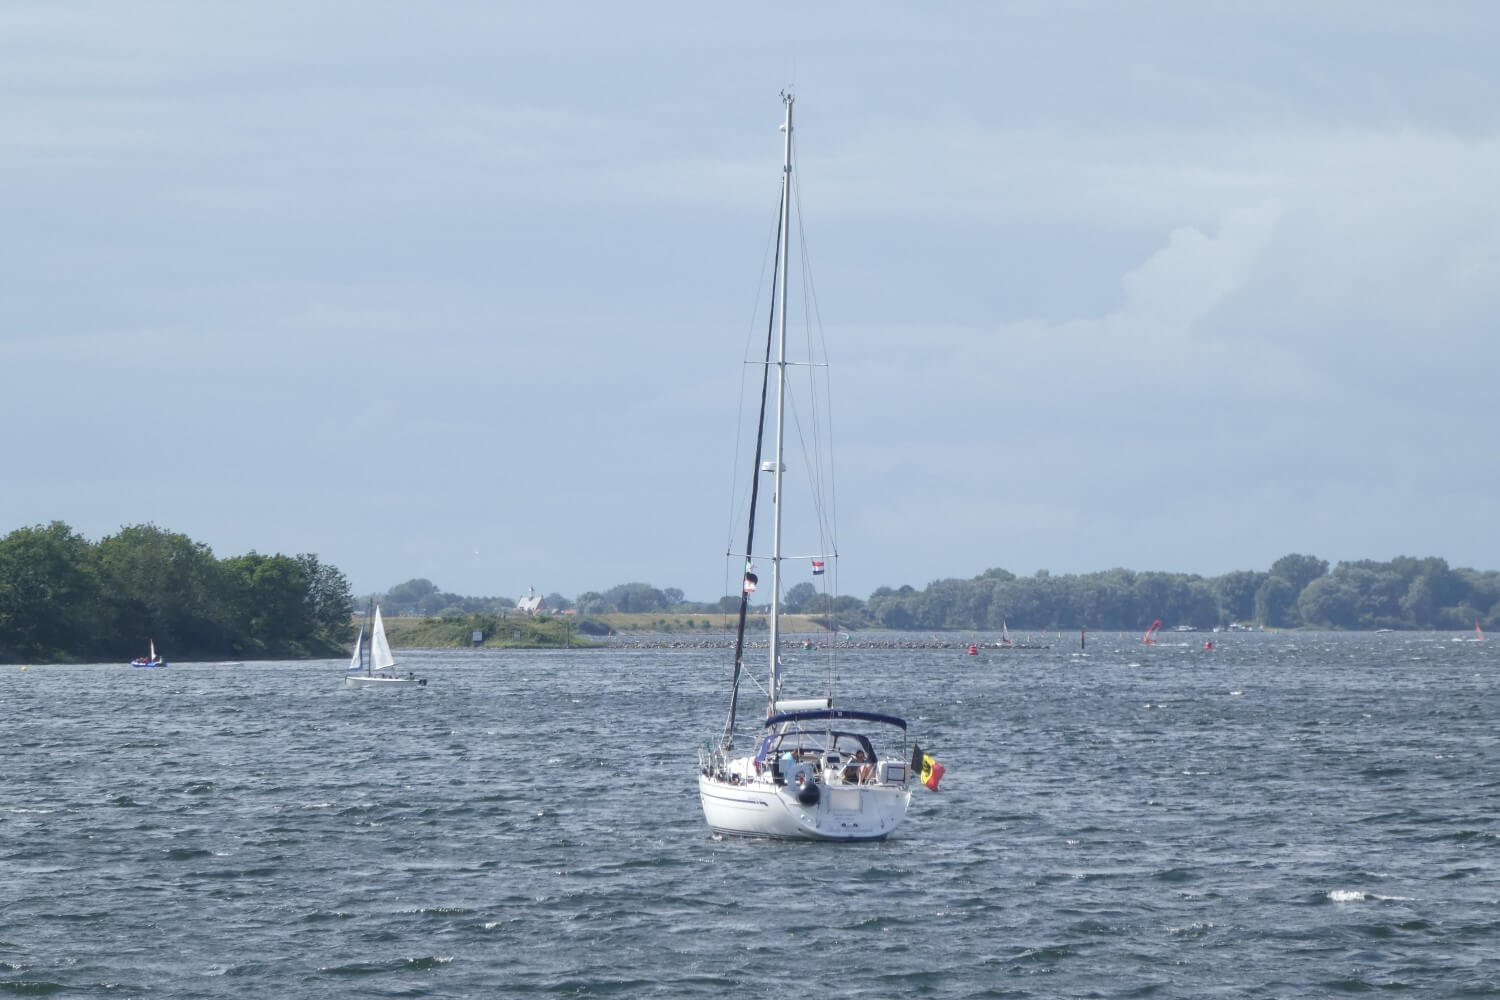 A boat on Lake Veere